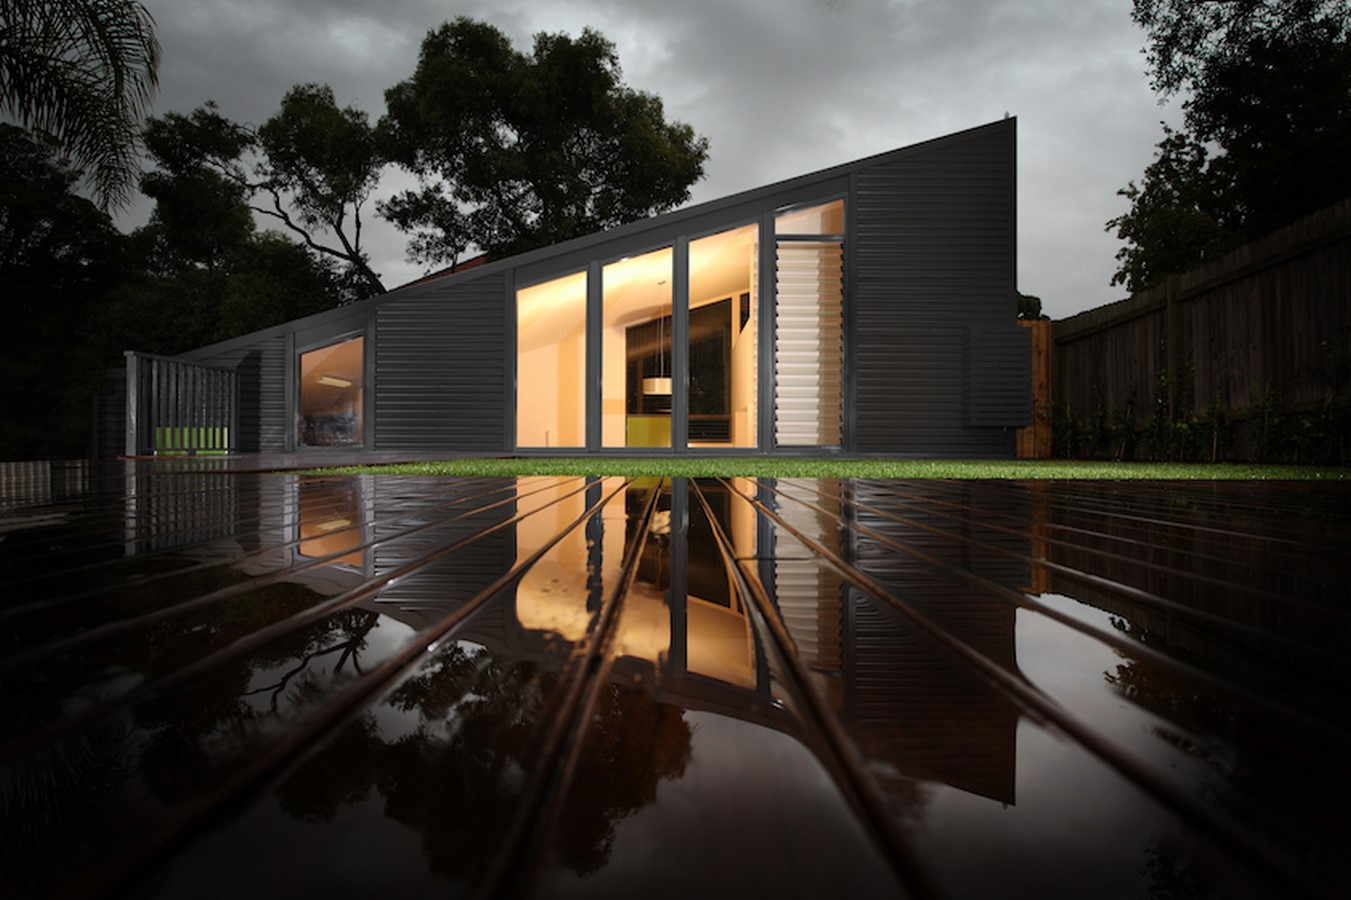 15 Examples of Tiny-home designs - Sheet7